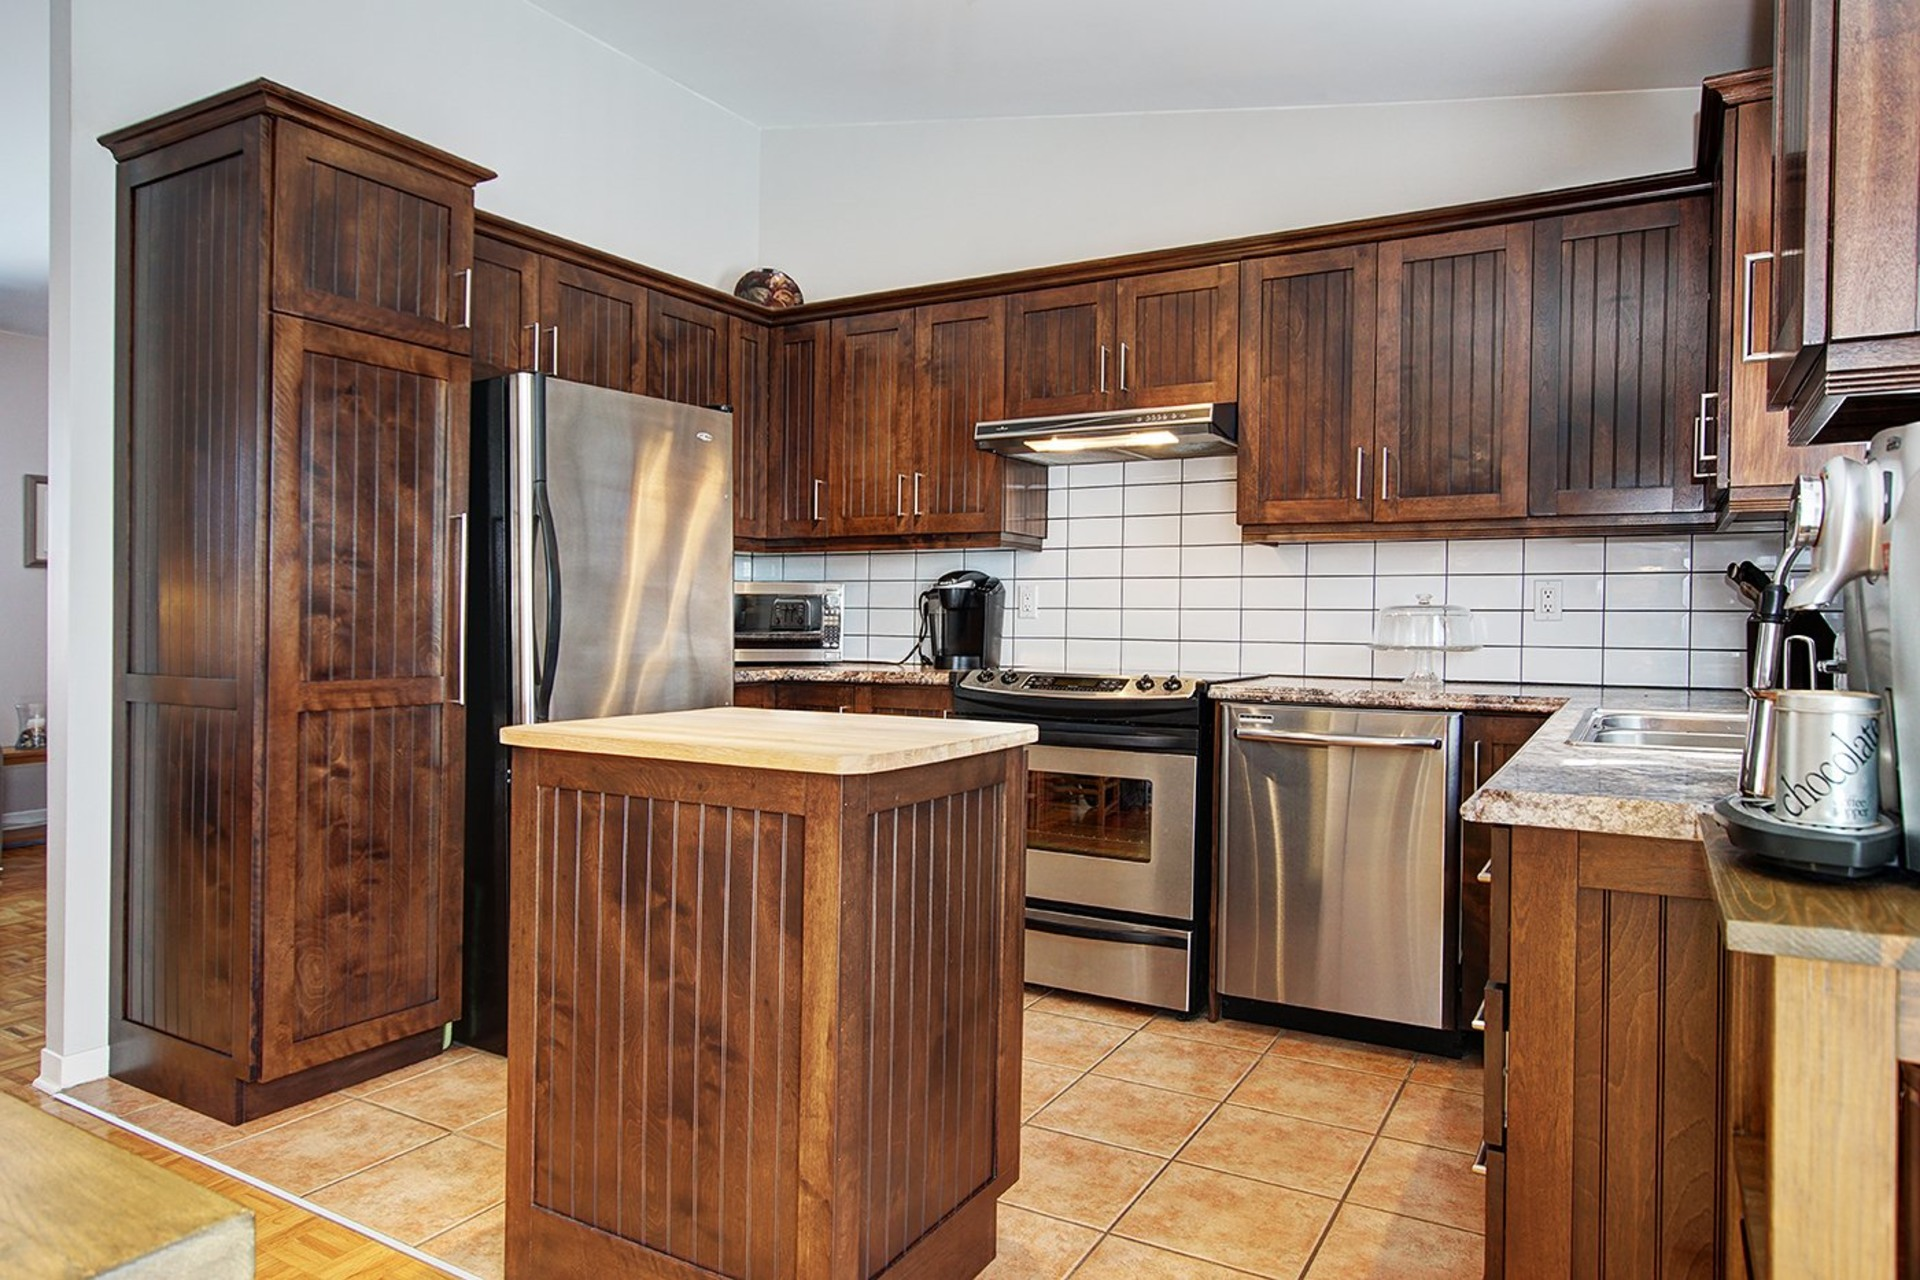 image 10 - House For sale Repentigny Repentigny  - 10 rooms